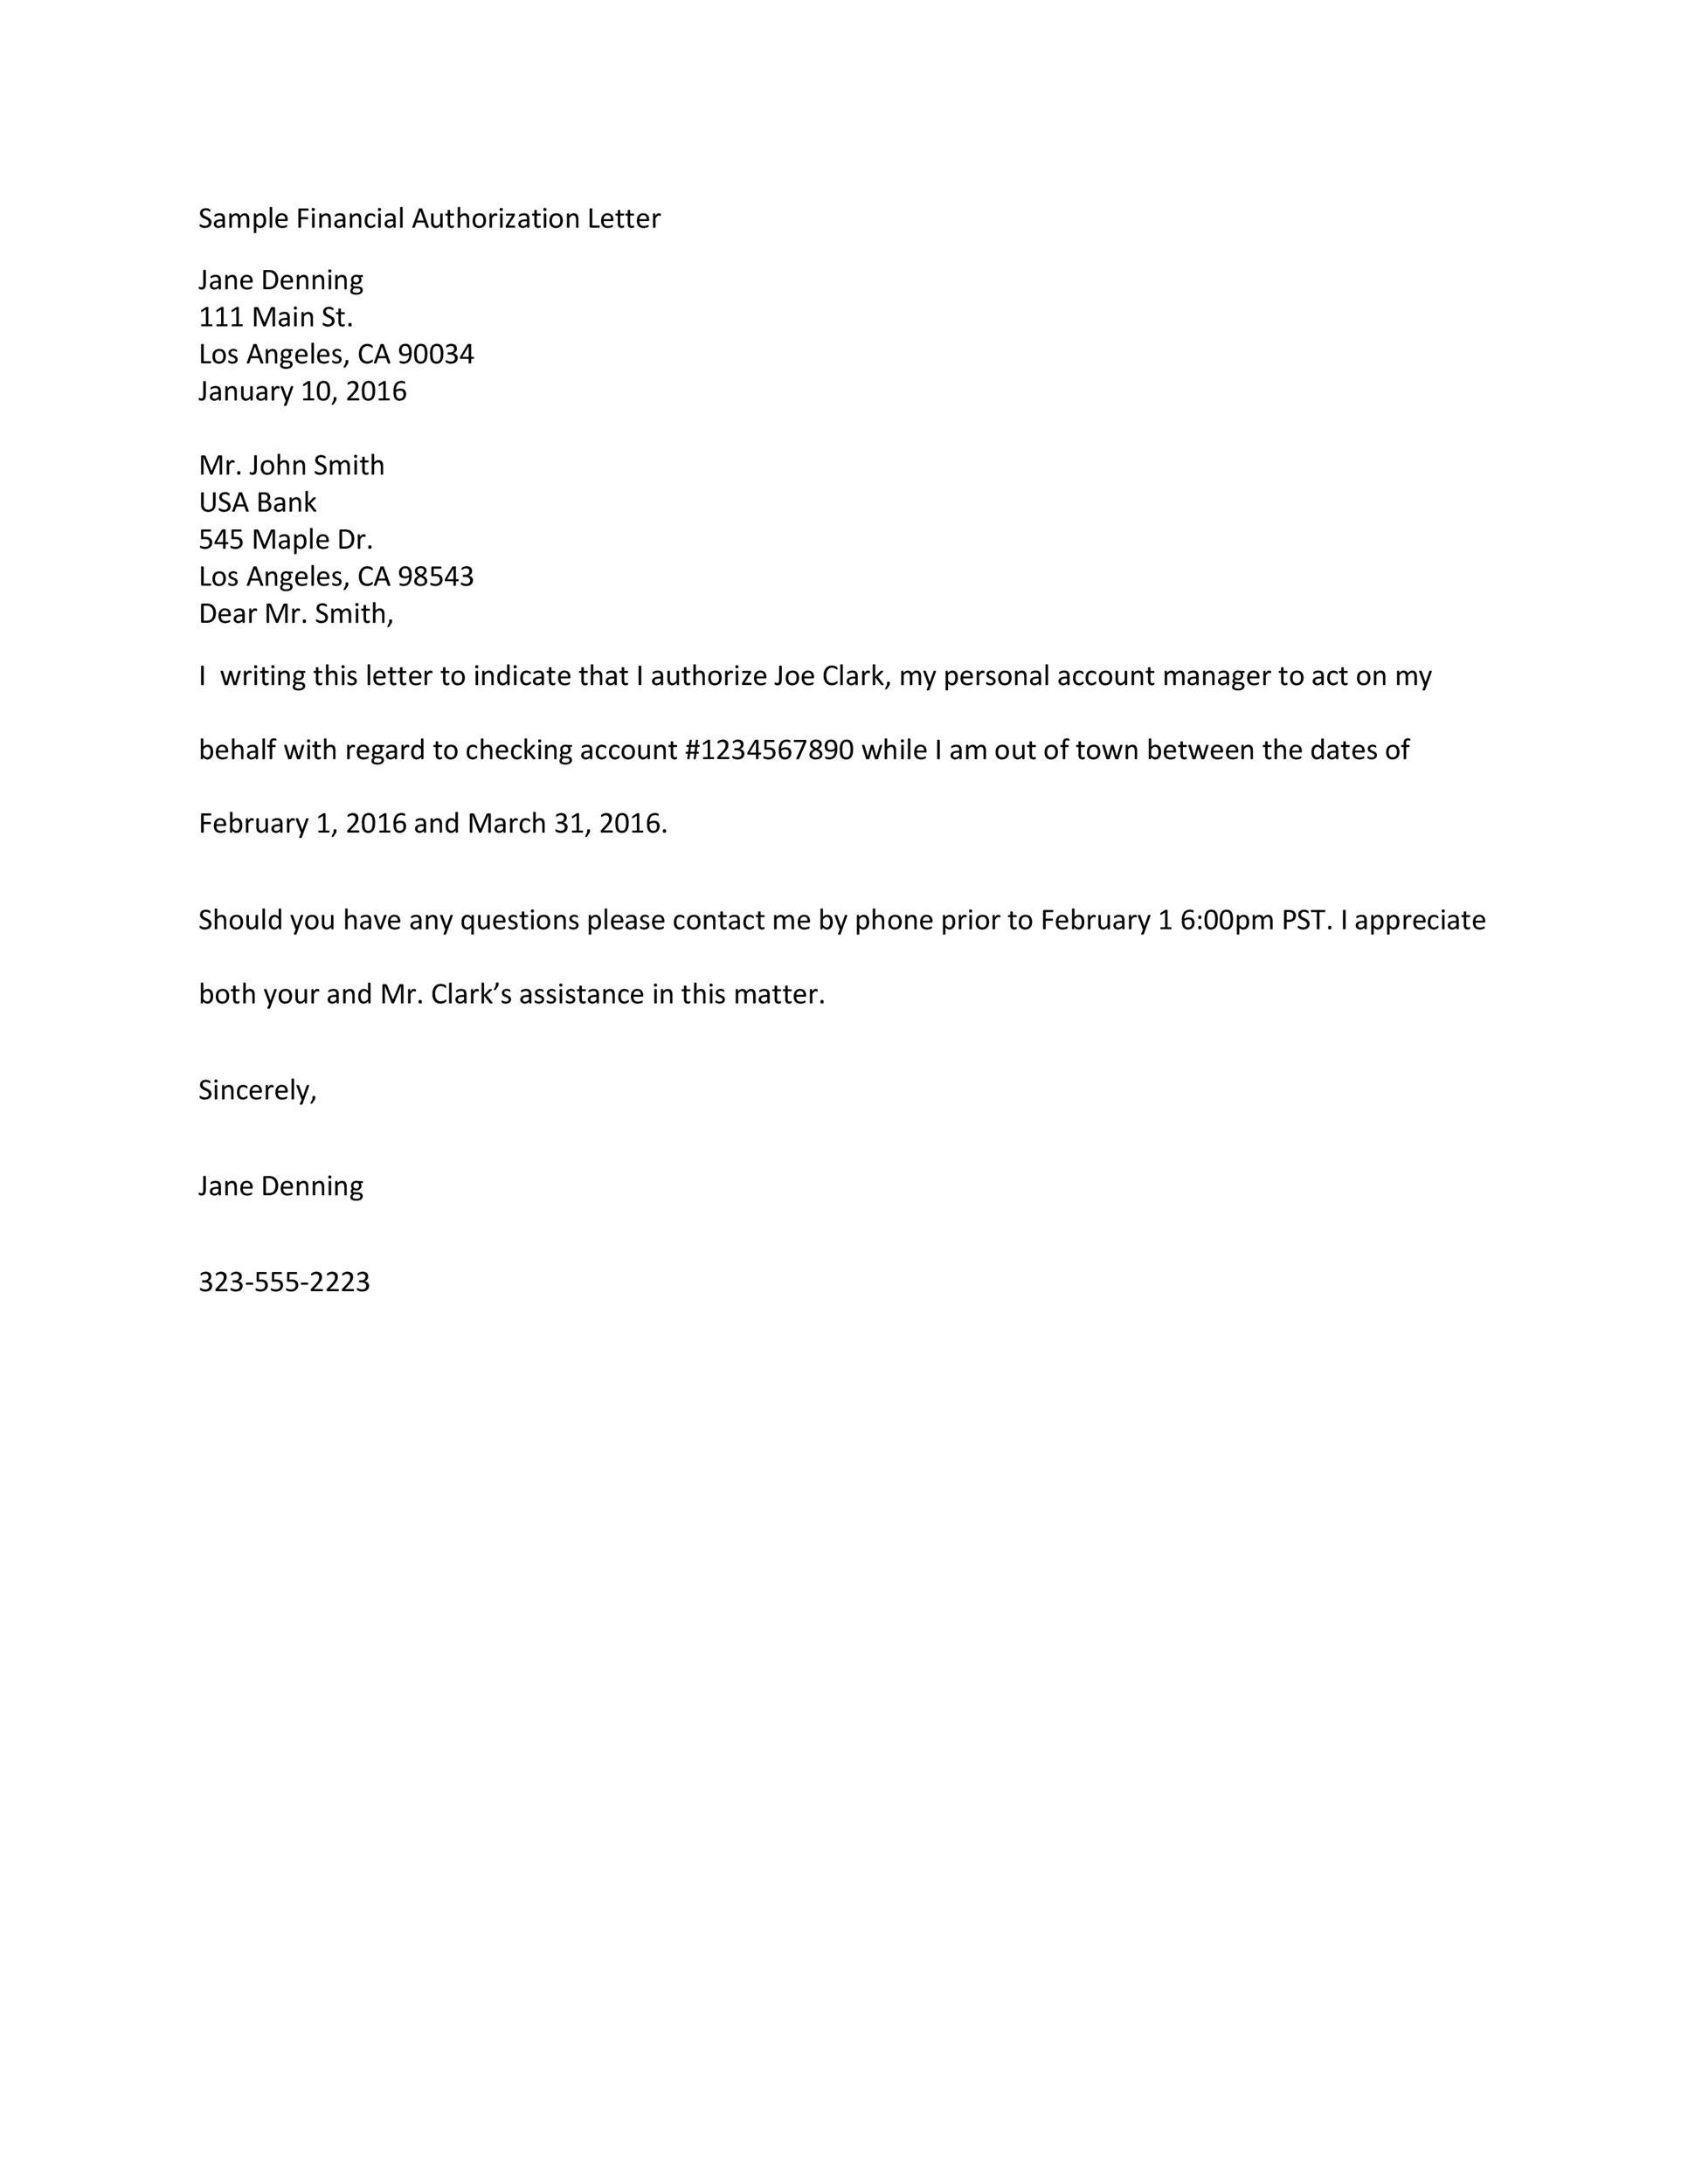 Sample Recommendation Request Letter RequestingALetterOf